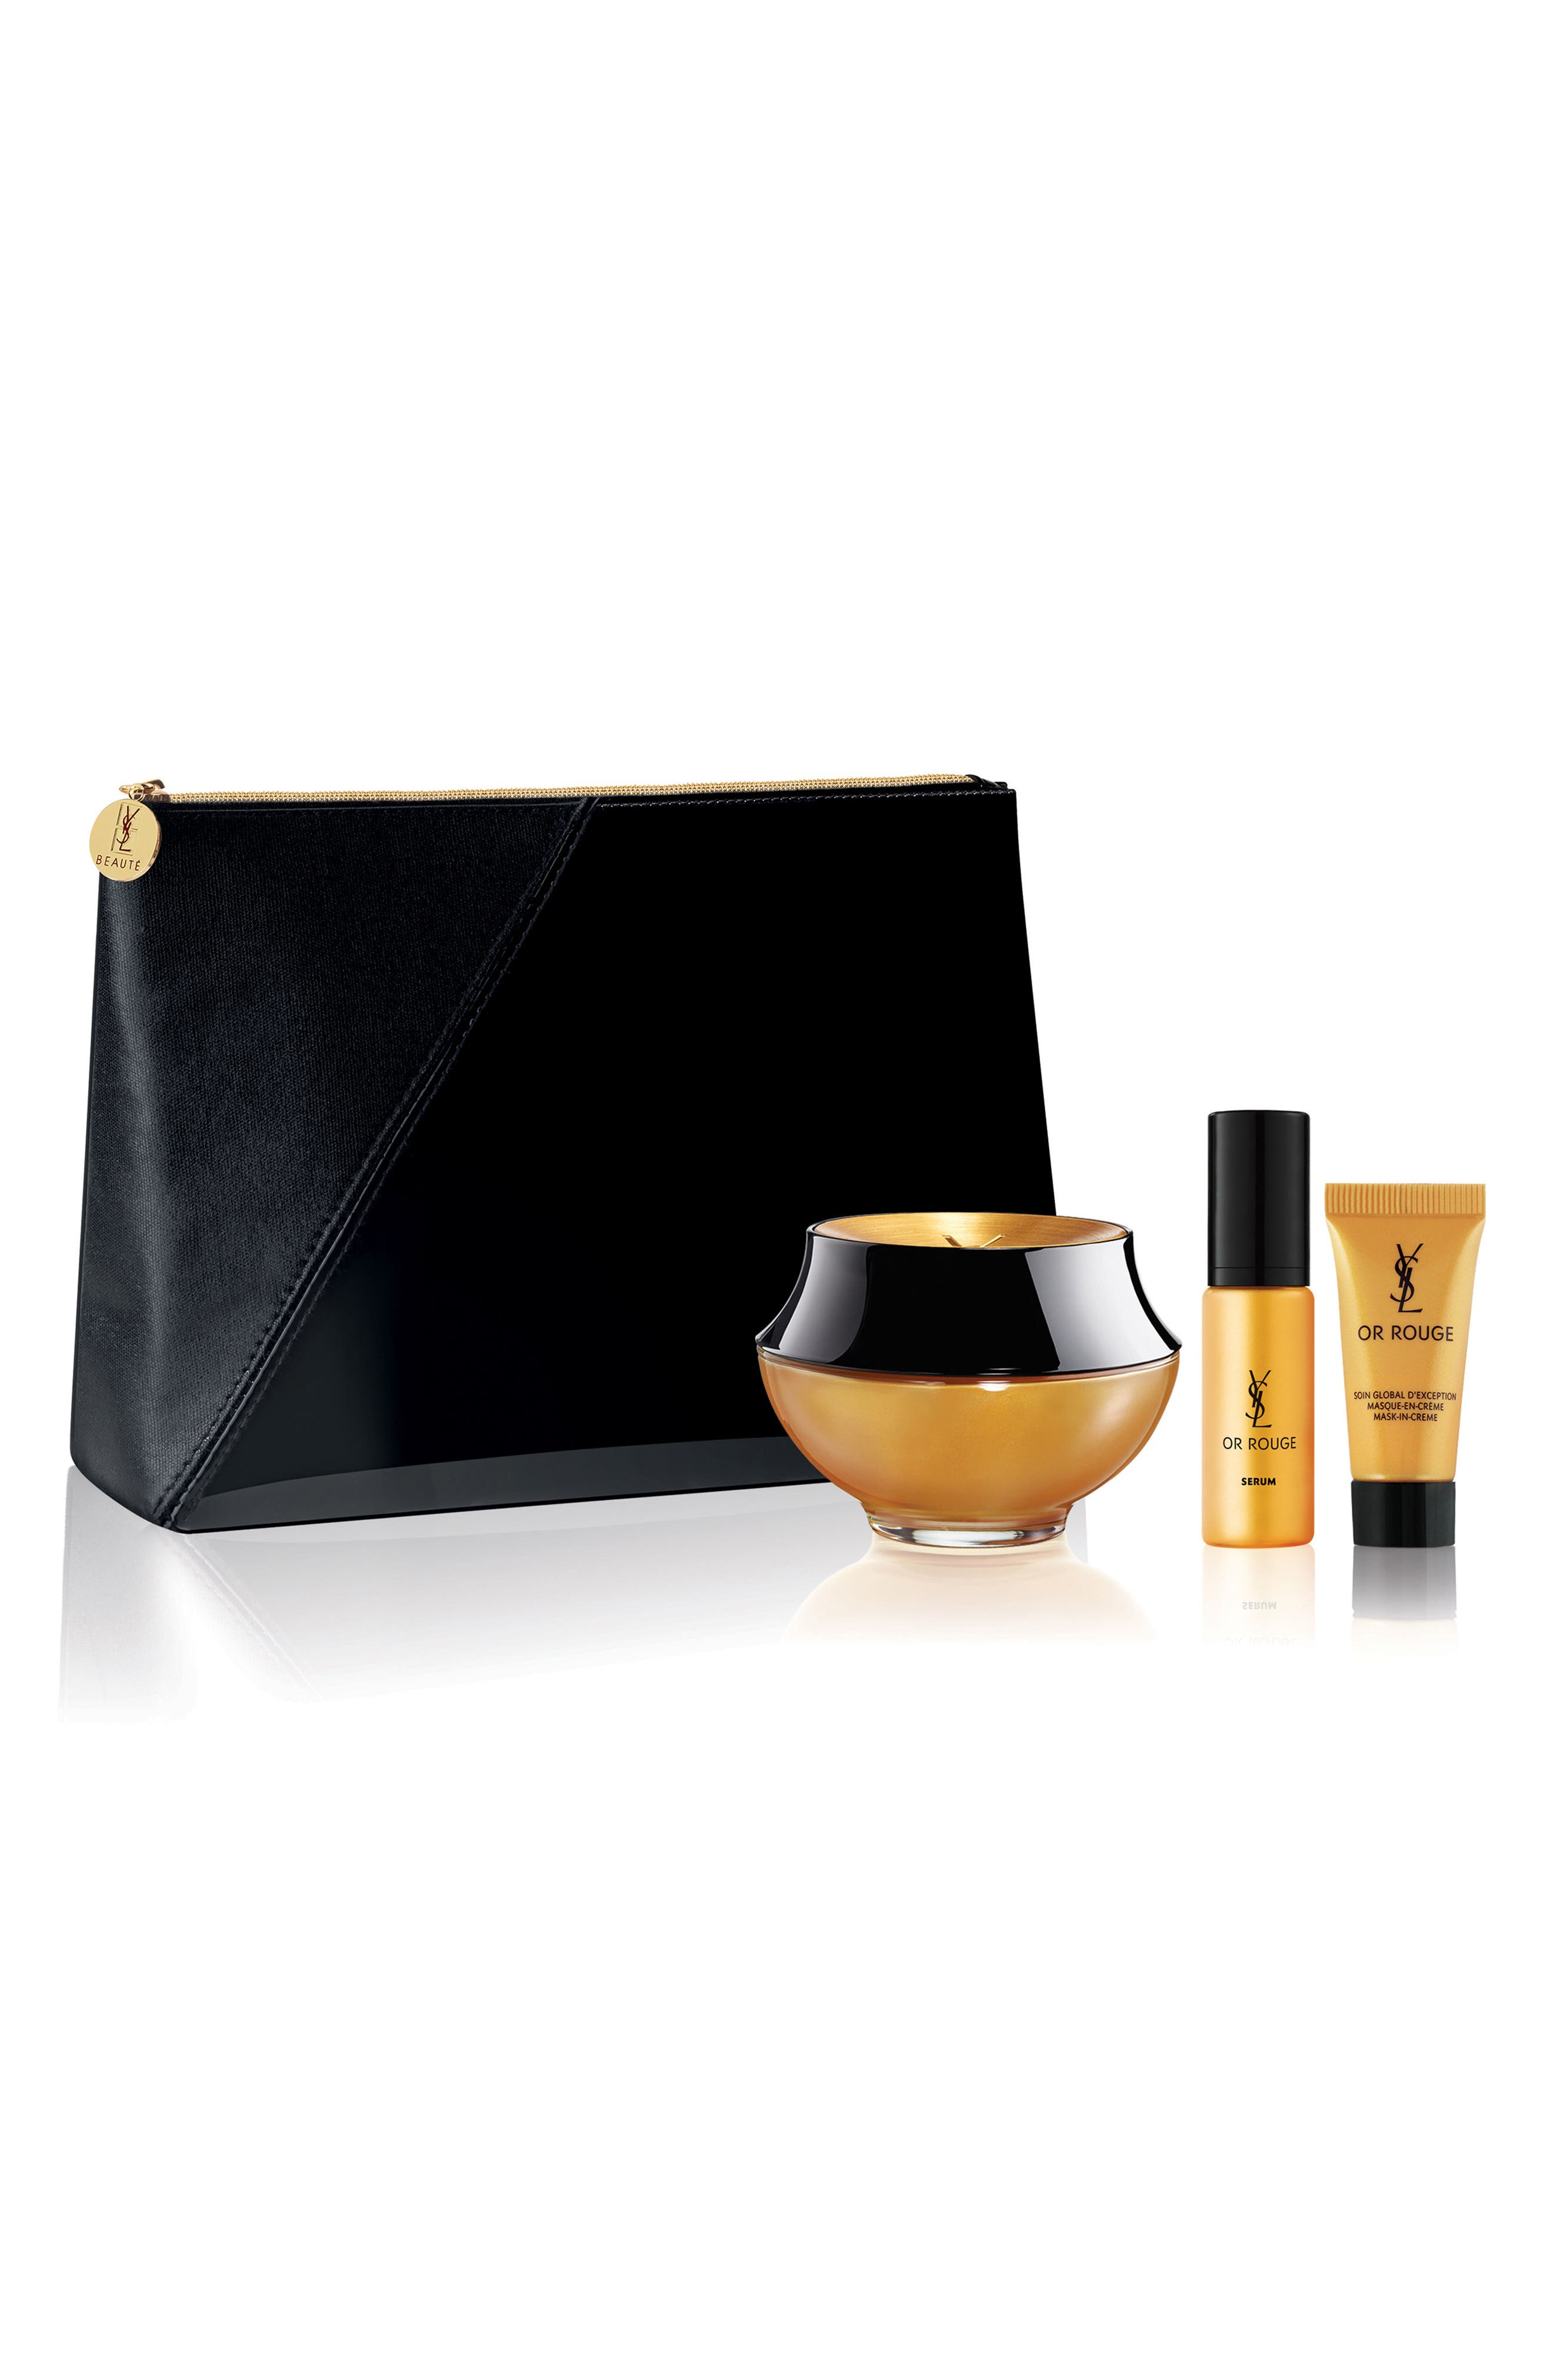 Yves Saint Laurent Or Rouge Discovery Set ($335 Value)